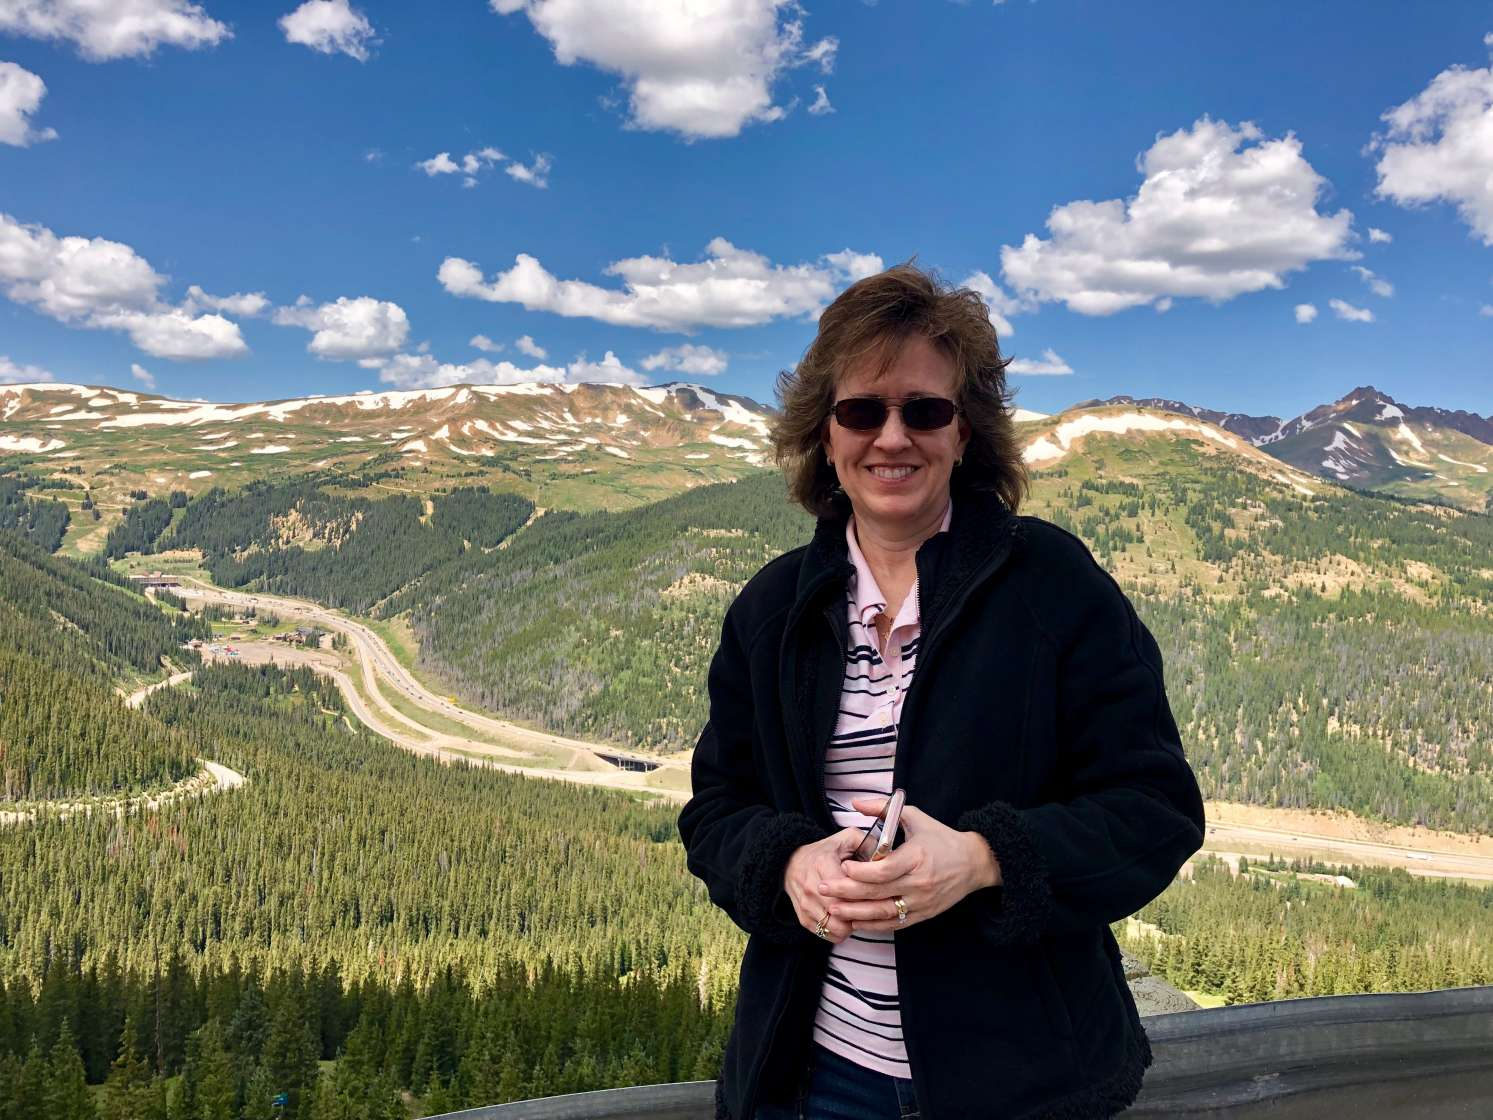 Kim Walliser is smiling at the camera with a mountain landscape in the background.